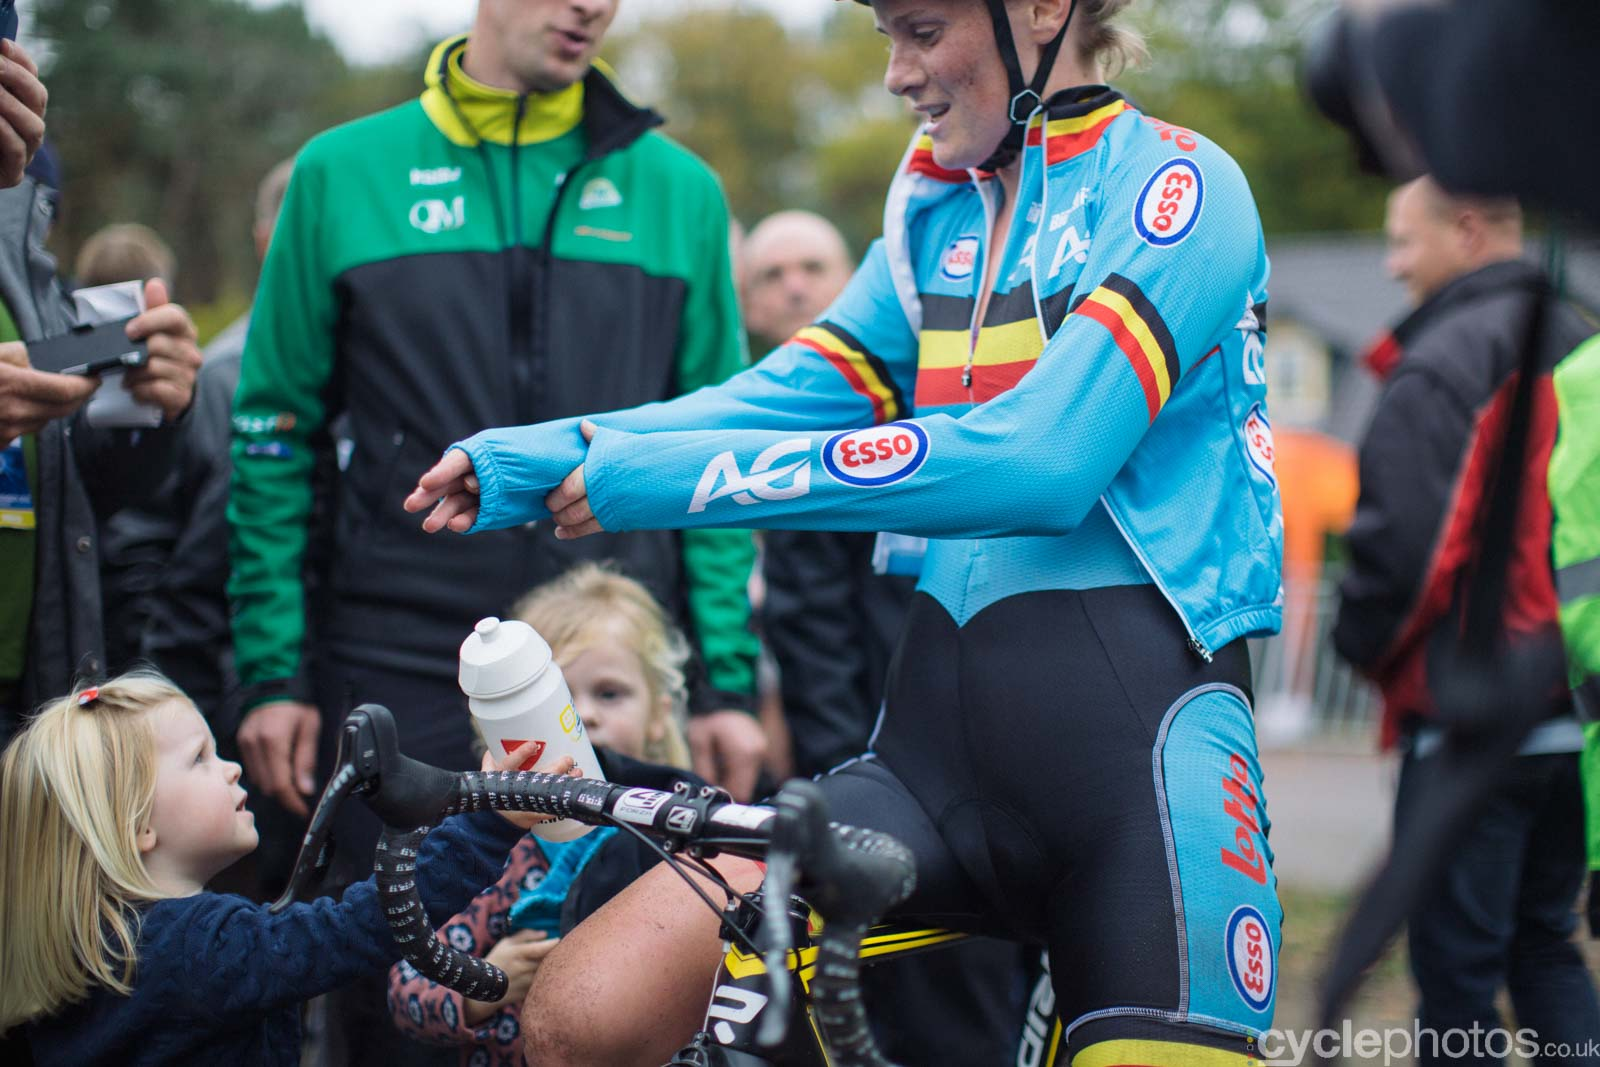 2015-cyclephotos-cyclocross-eucx-huijbergen-143019-loes-sels